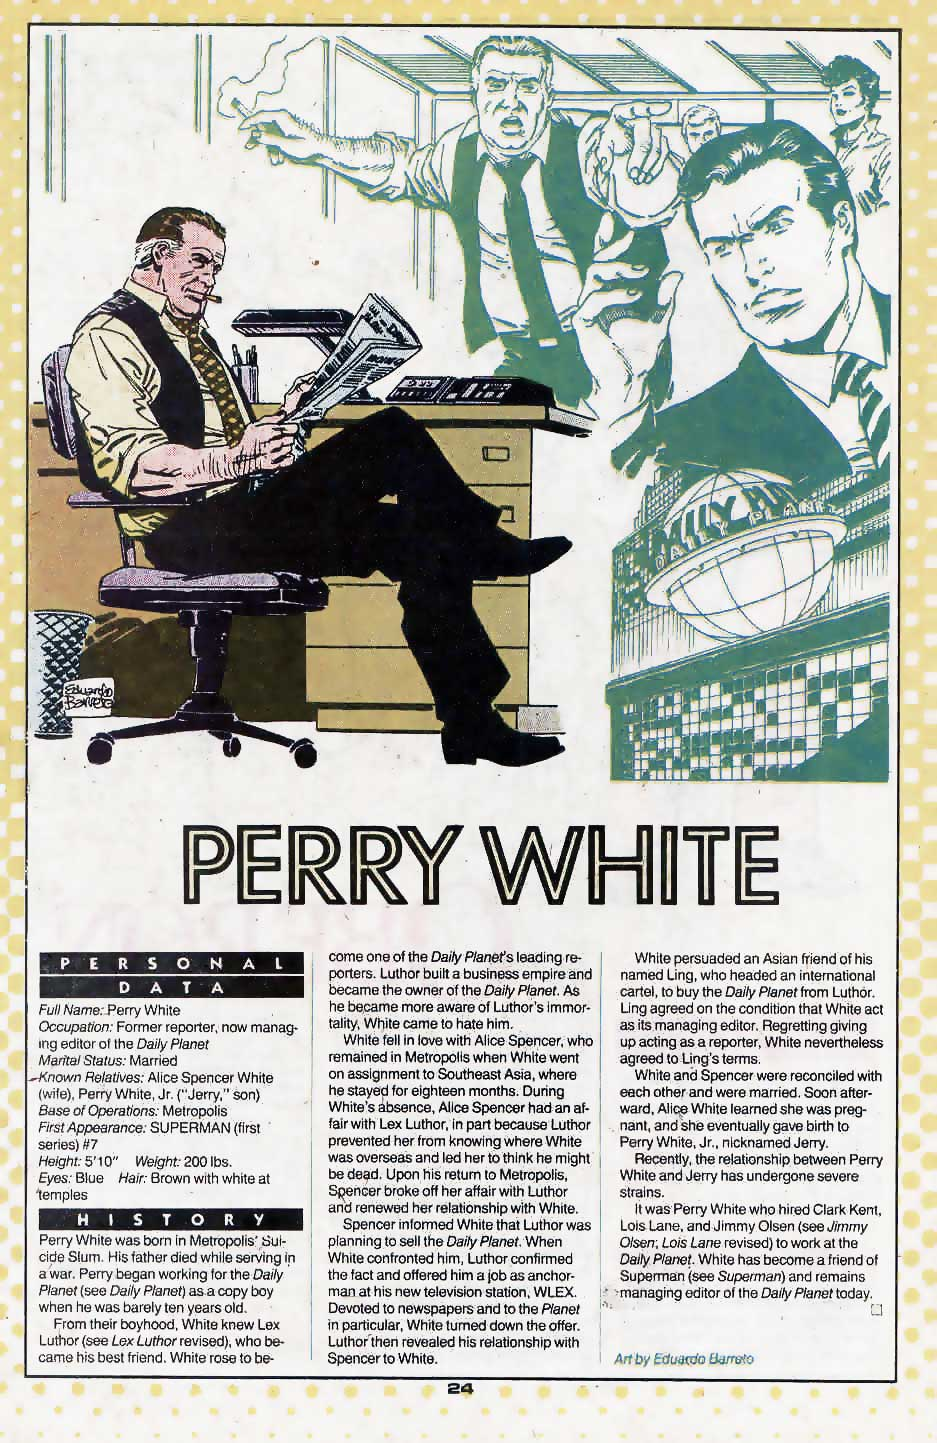 Perry White by Eduardo Barreto